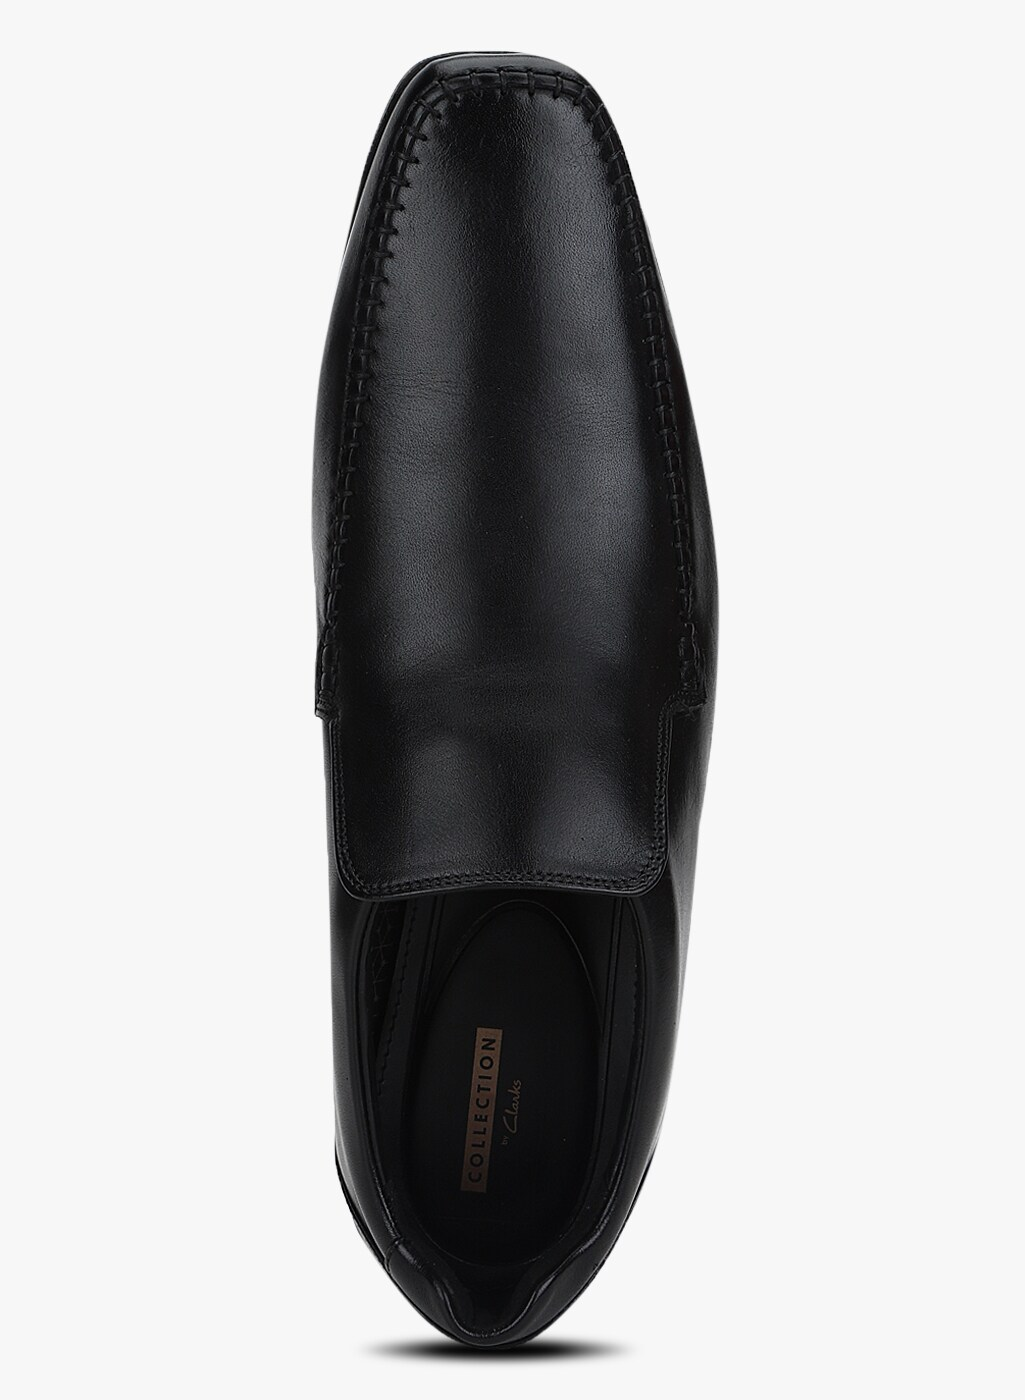 Clarks Glement Seam Leather Shoes in Black